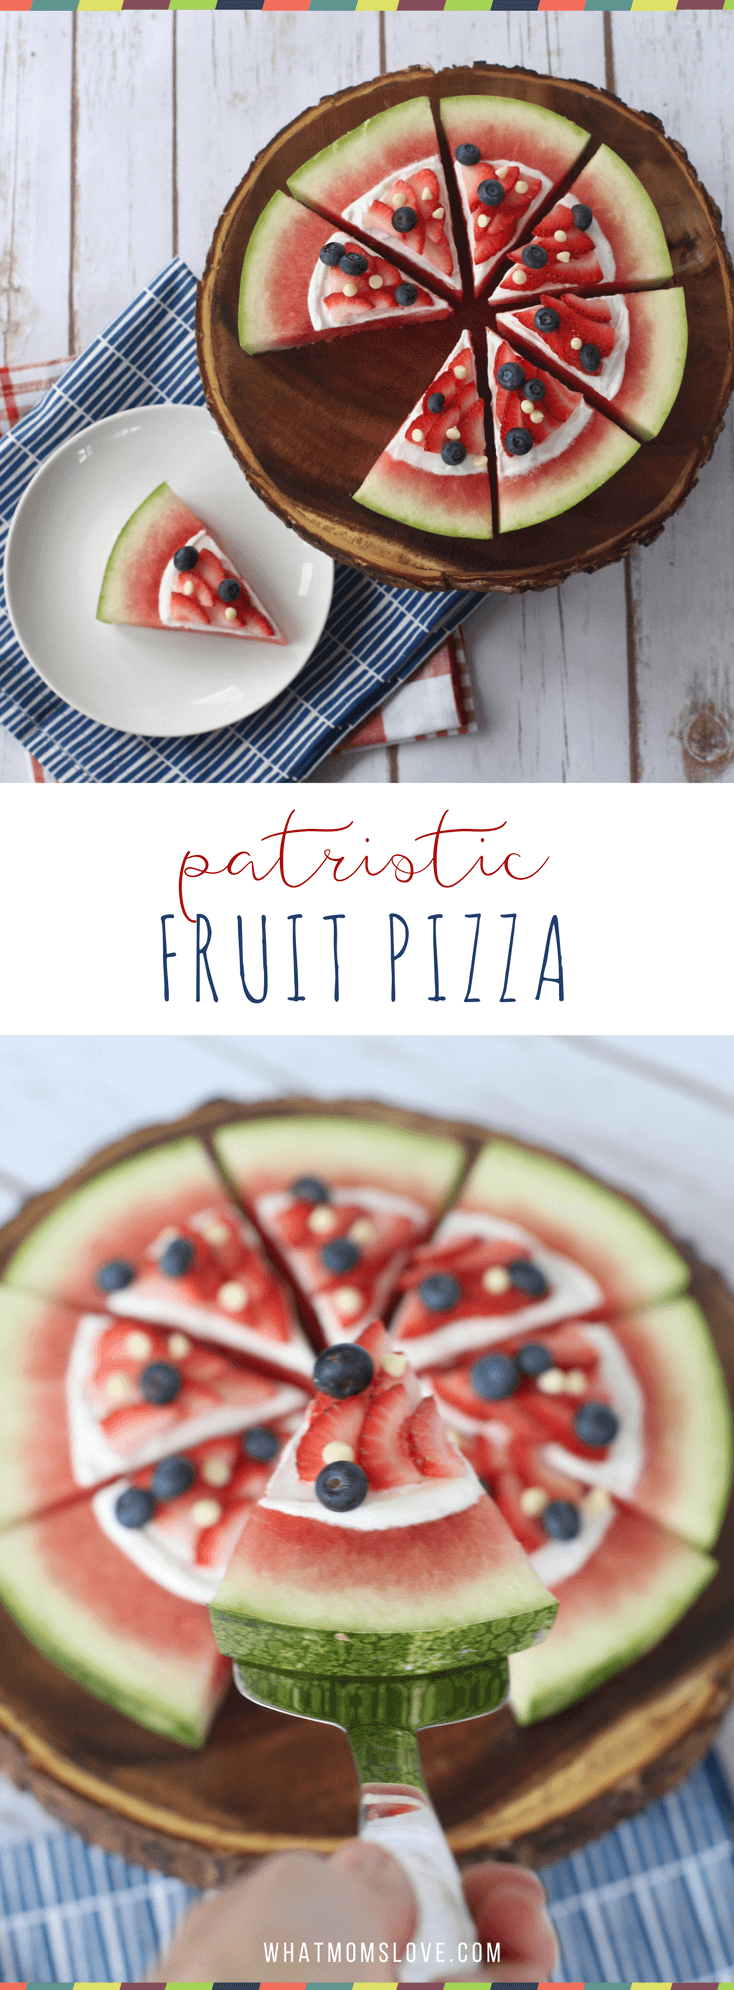 Healthy 4th of July dessert recipe. Red, white and blue watermelon fruit pizza.